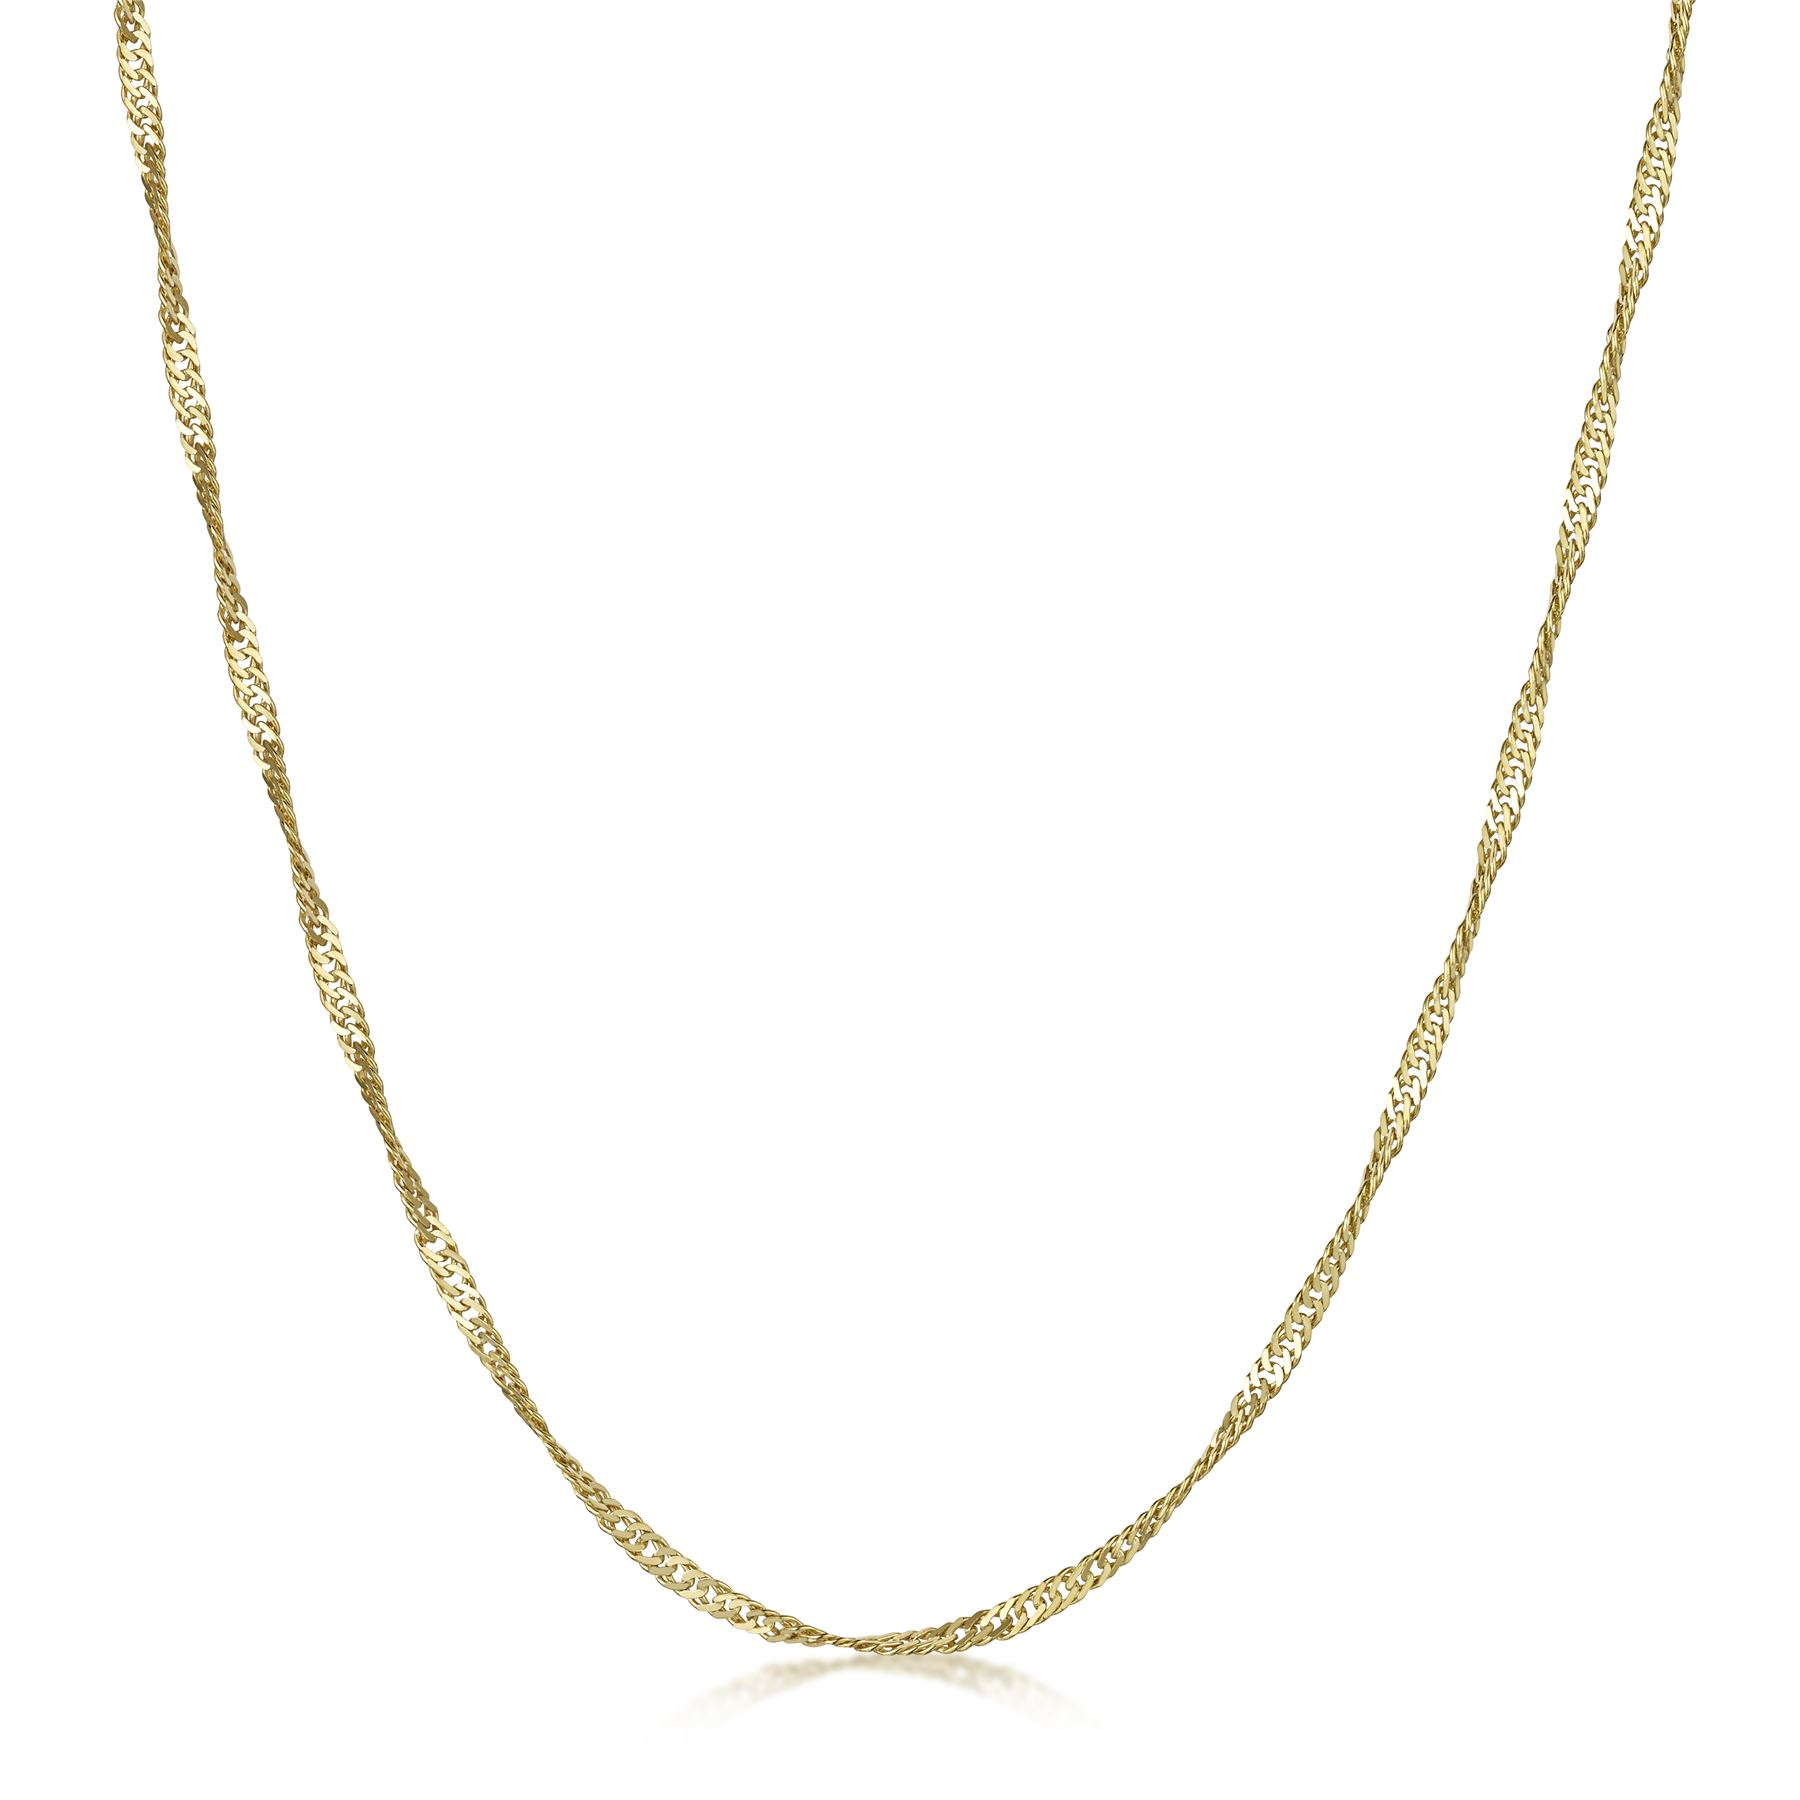 Amberta-Jewelry-Gold-Plated-on-Real-925-Sterling-Silver-Necklace-Chain-Italy thumbnail 36